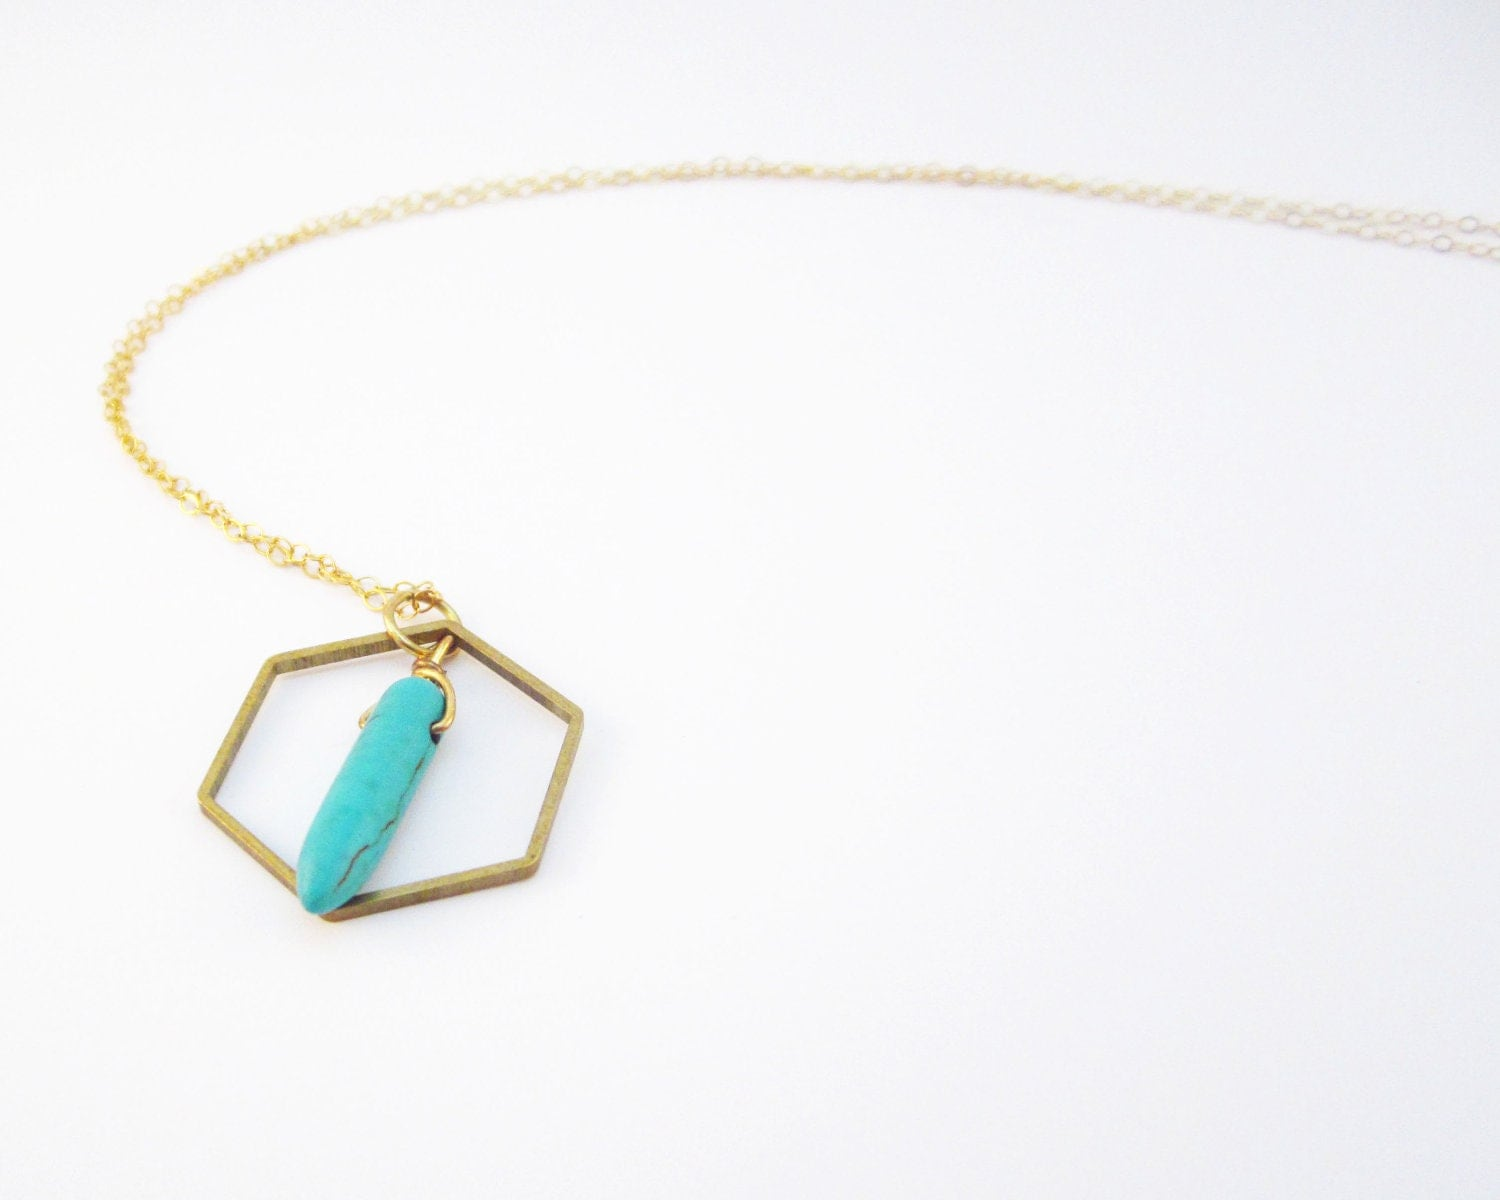 Hexagon Turquoise Necklace 14k Gold Filled Chain Everyday and Layering   Christmas Holiday 2012 - LaurenRoseJewlers